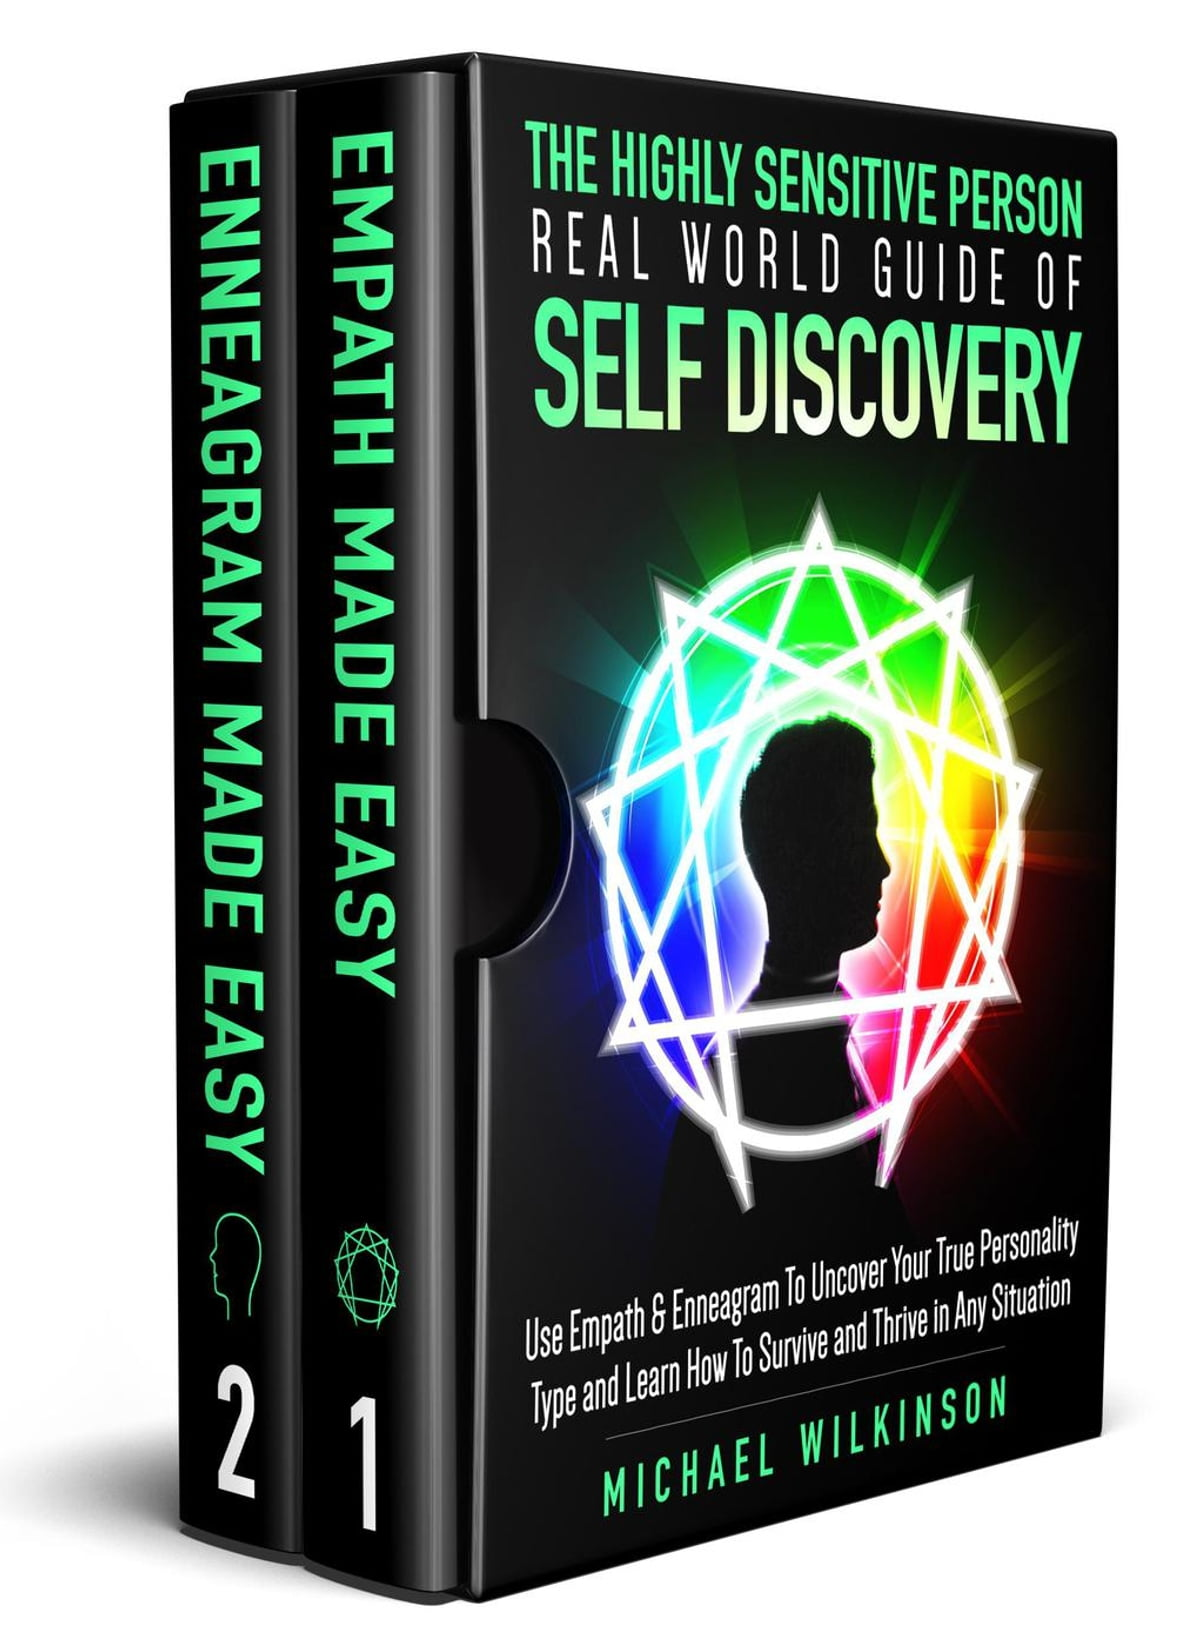 The Highly Sensitive Person Real World Guide of Self Discovery 2 in 1 Use  Empath & Enneagram To Uncover Your True Personality Type and Learn How To